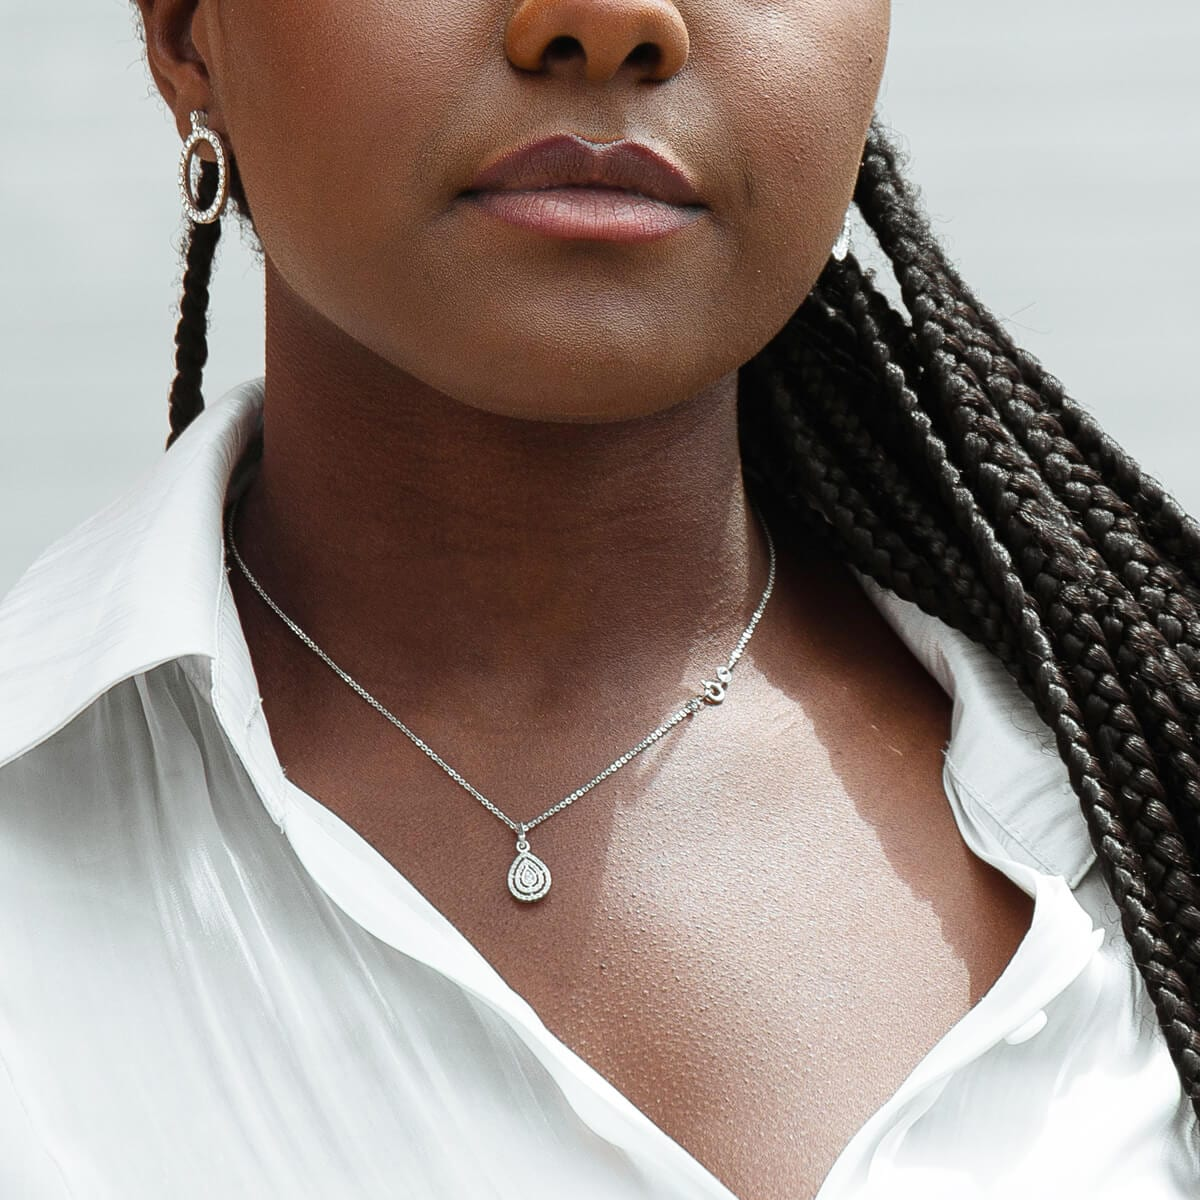 black woman with braids a necklace and an earring